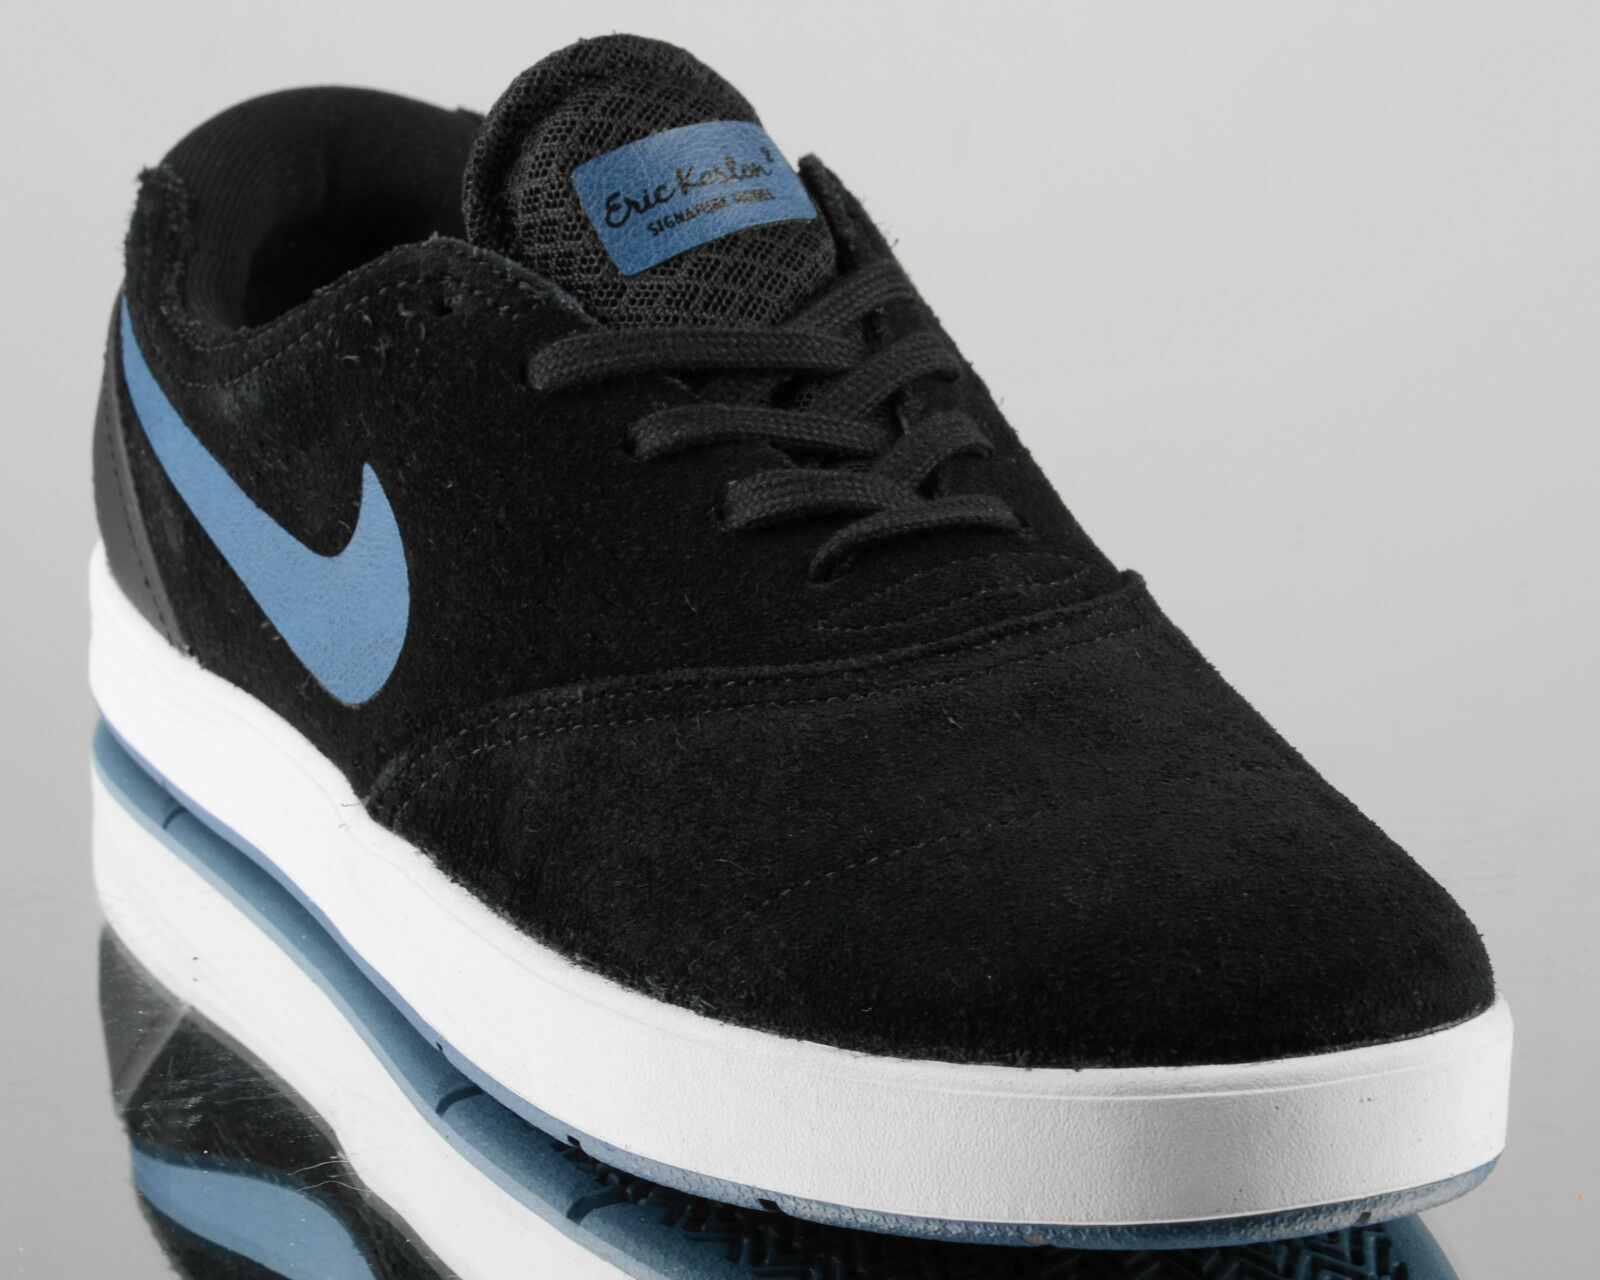 Nike Eric Koston 2 low low low mens lifestyle lunar schuhe action sports schwarz 580418-007 a798f0